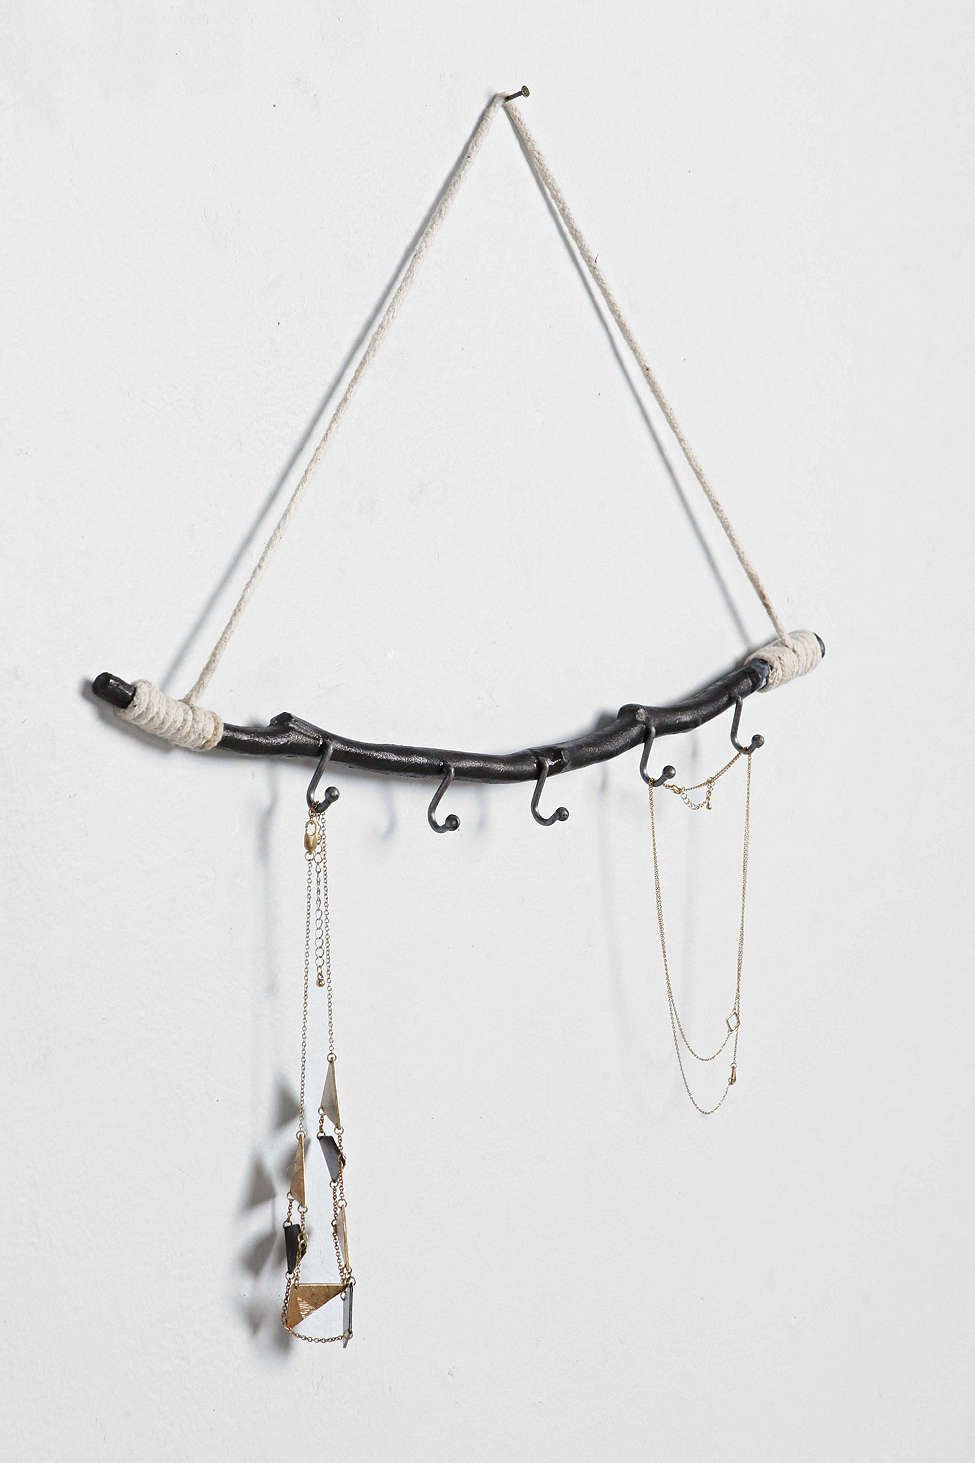 Magical Thinking Hanging Branch Jewelry Stand Urban Outfitters